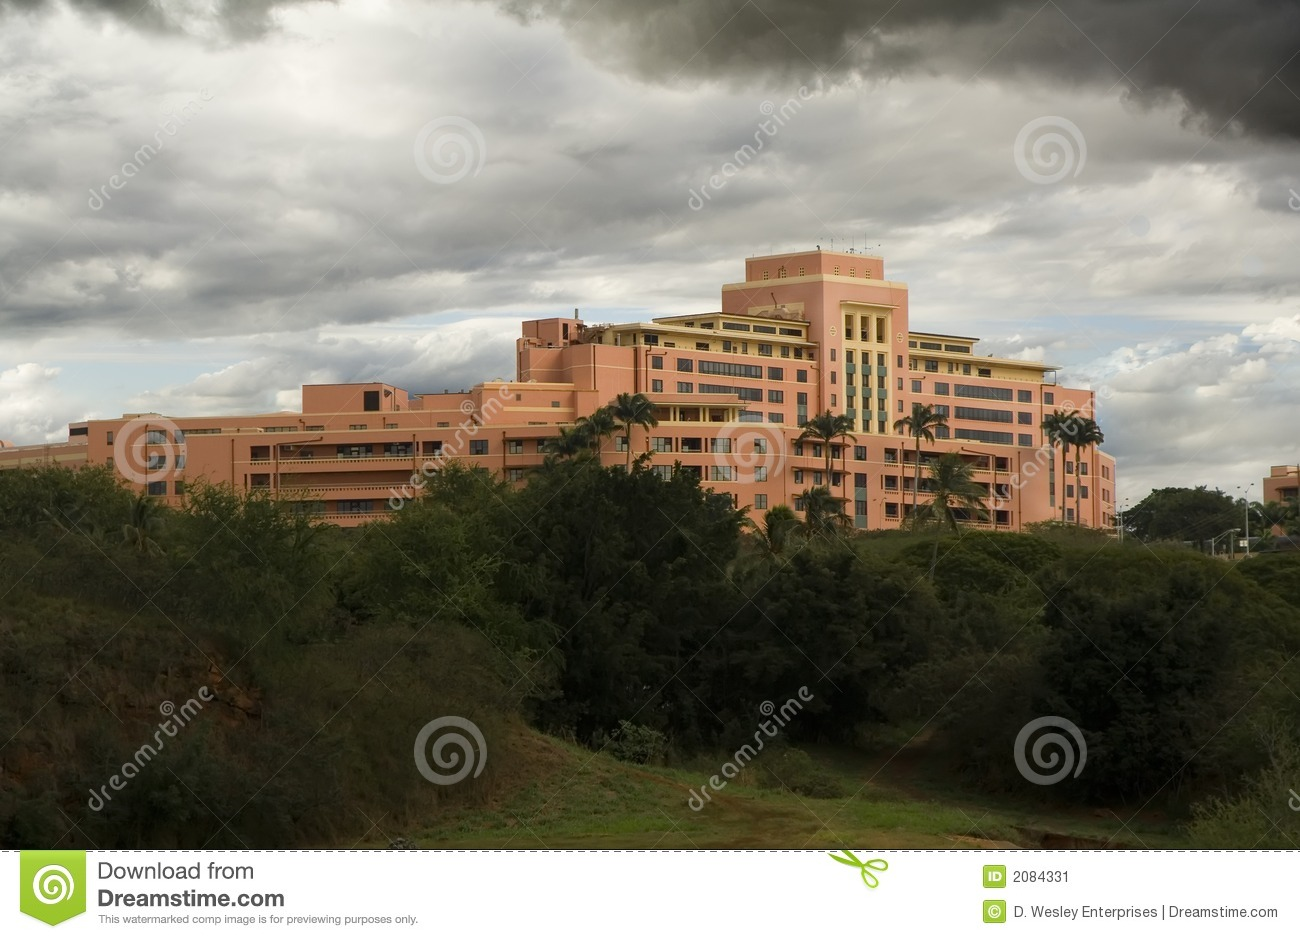 tripler army medical ctr senior singles Our seasoned care advisors in tripler army medical center, hi are willing to help you find the right nursing home for your loved one get pricing and info about nursing homes in tripler army medical center from our best care advisors at ourparents.